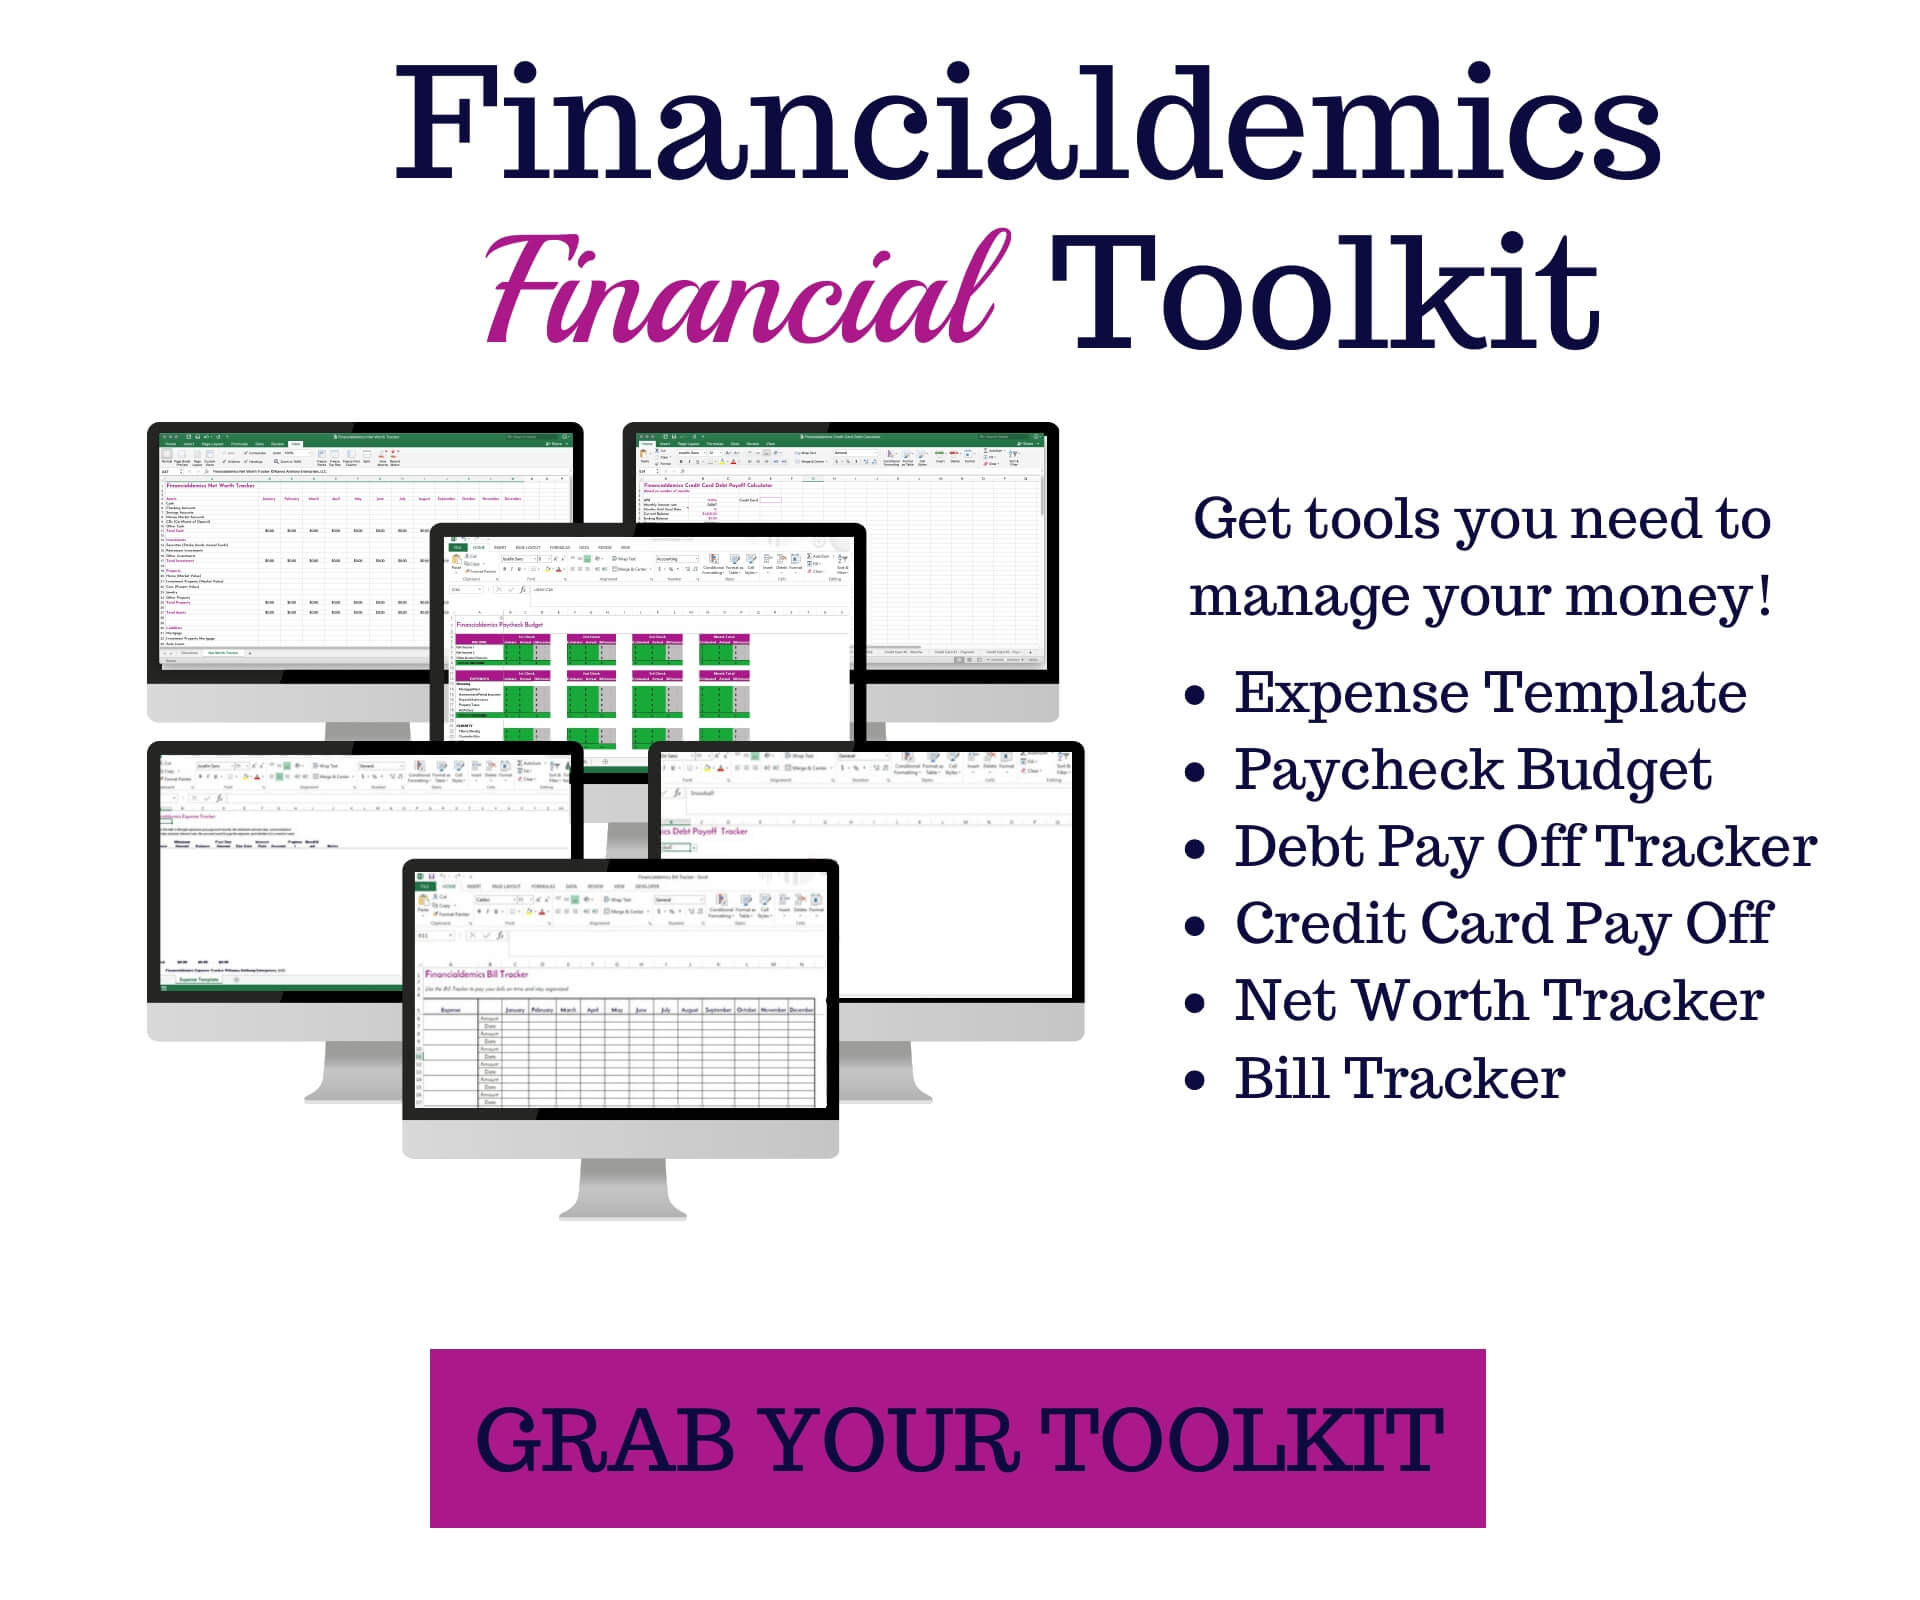 Financial Toolkit